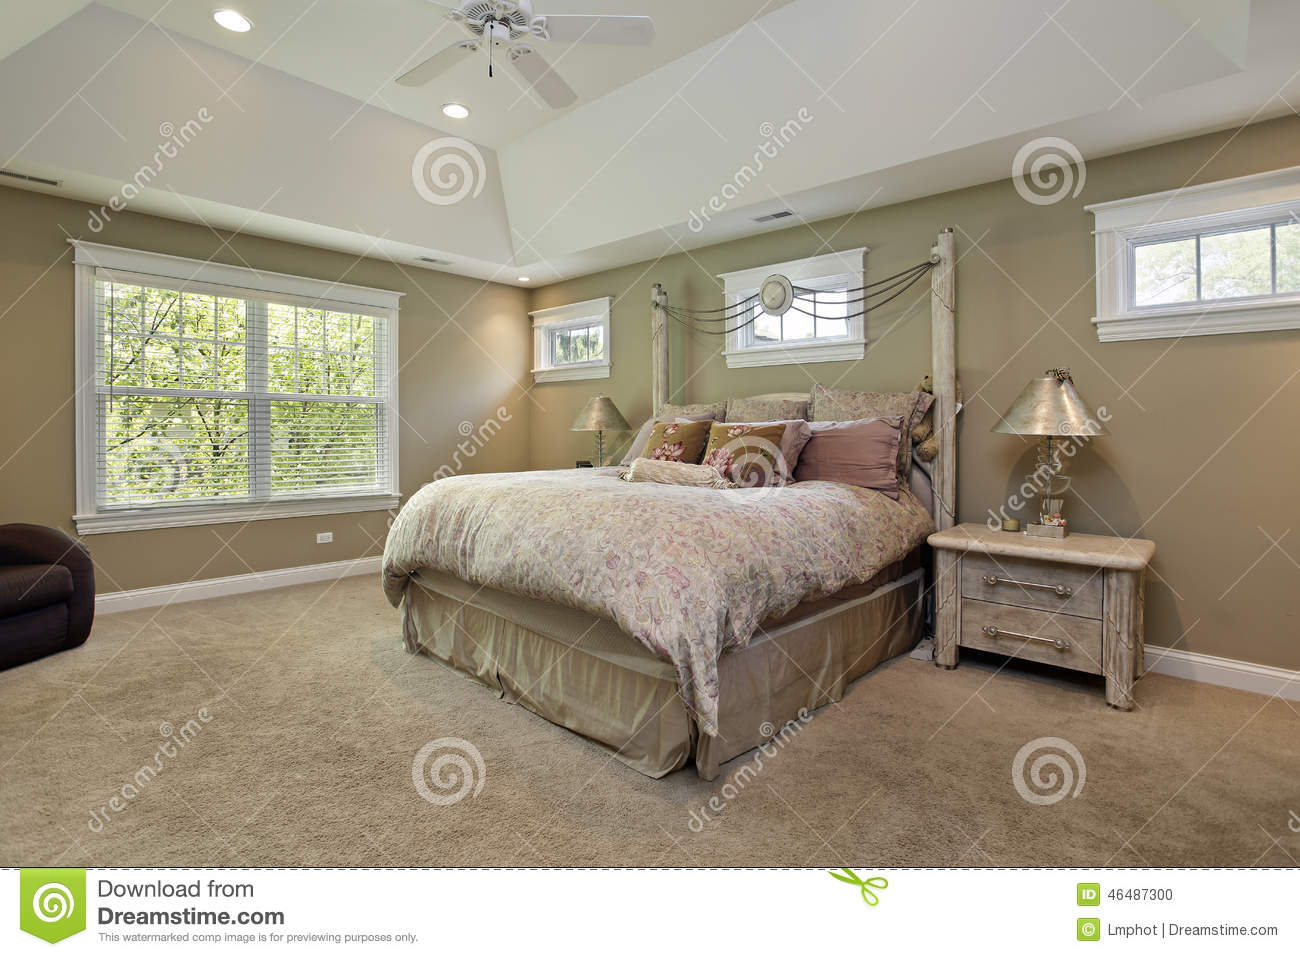 Master Bedroom Gold Walls master bedroom with gold walls royalty free stock photo - image